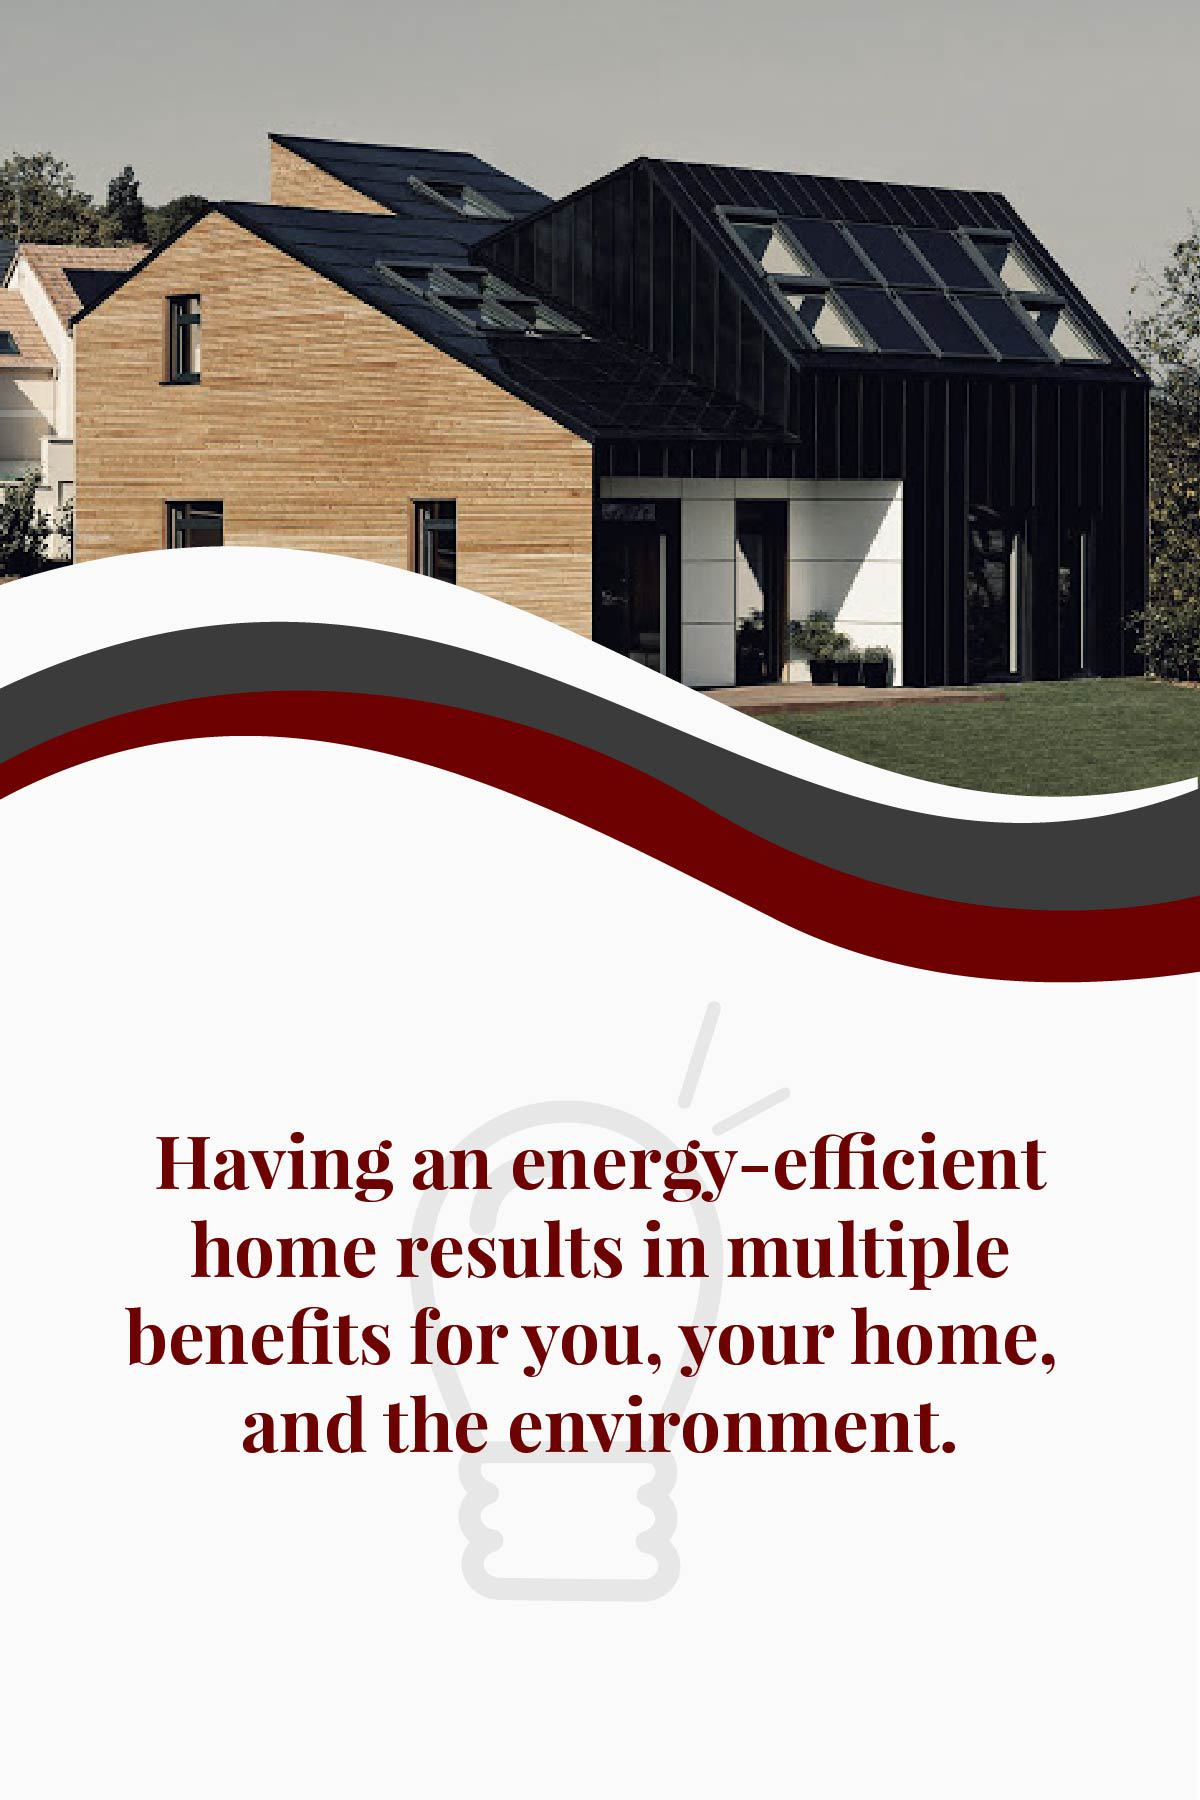 An energy efficient home benefits you and the environment